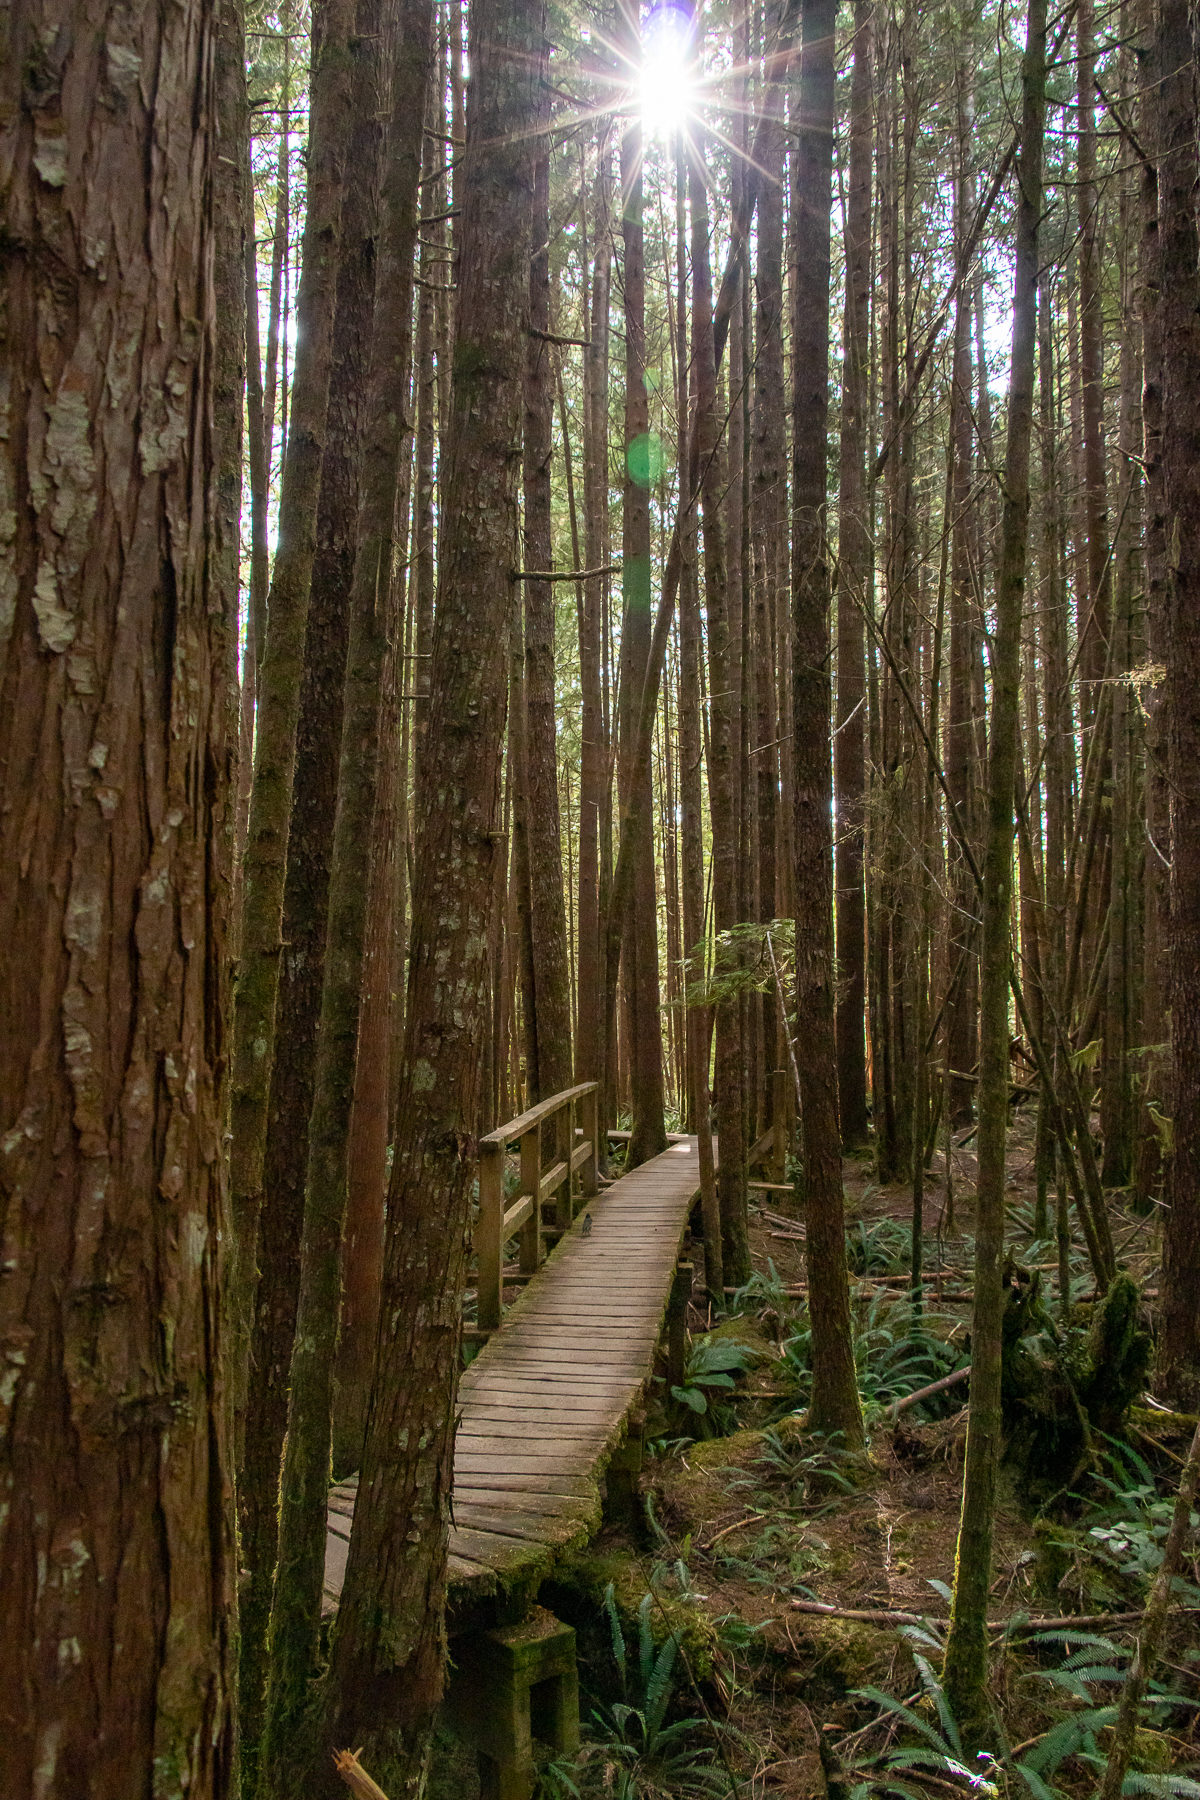 A wooden walkway leads through the forest on the west coast of Canada.